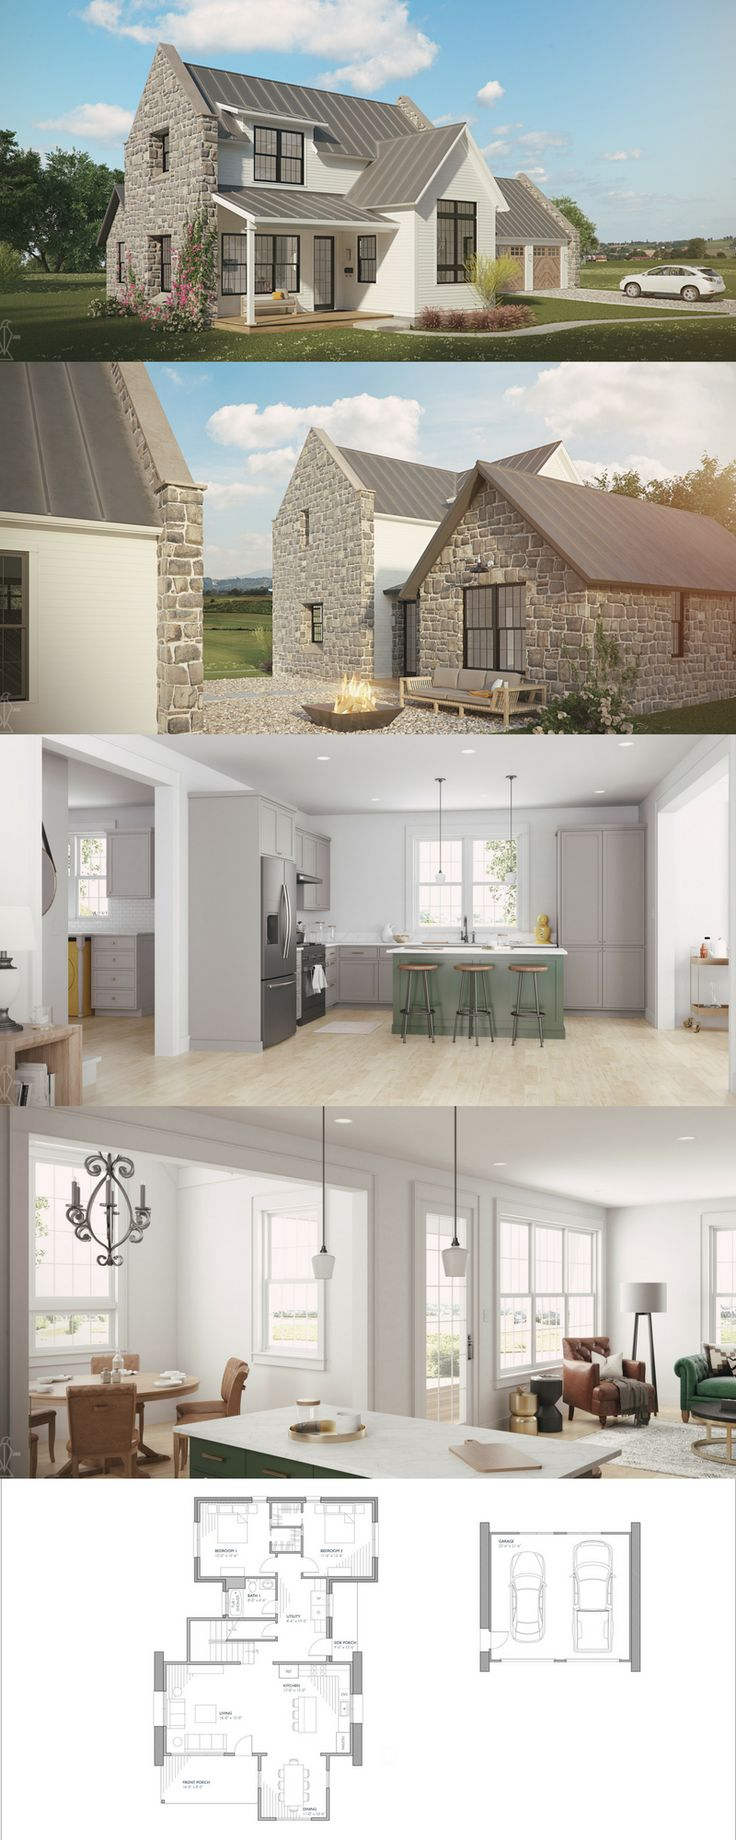 The Brune! Our smallest european farmhouse plan, but still plenty of open living space with 1968 square feet! floor plans and house plans for sale!